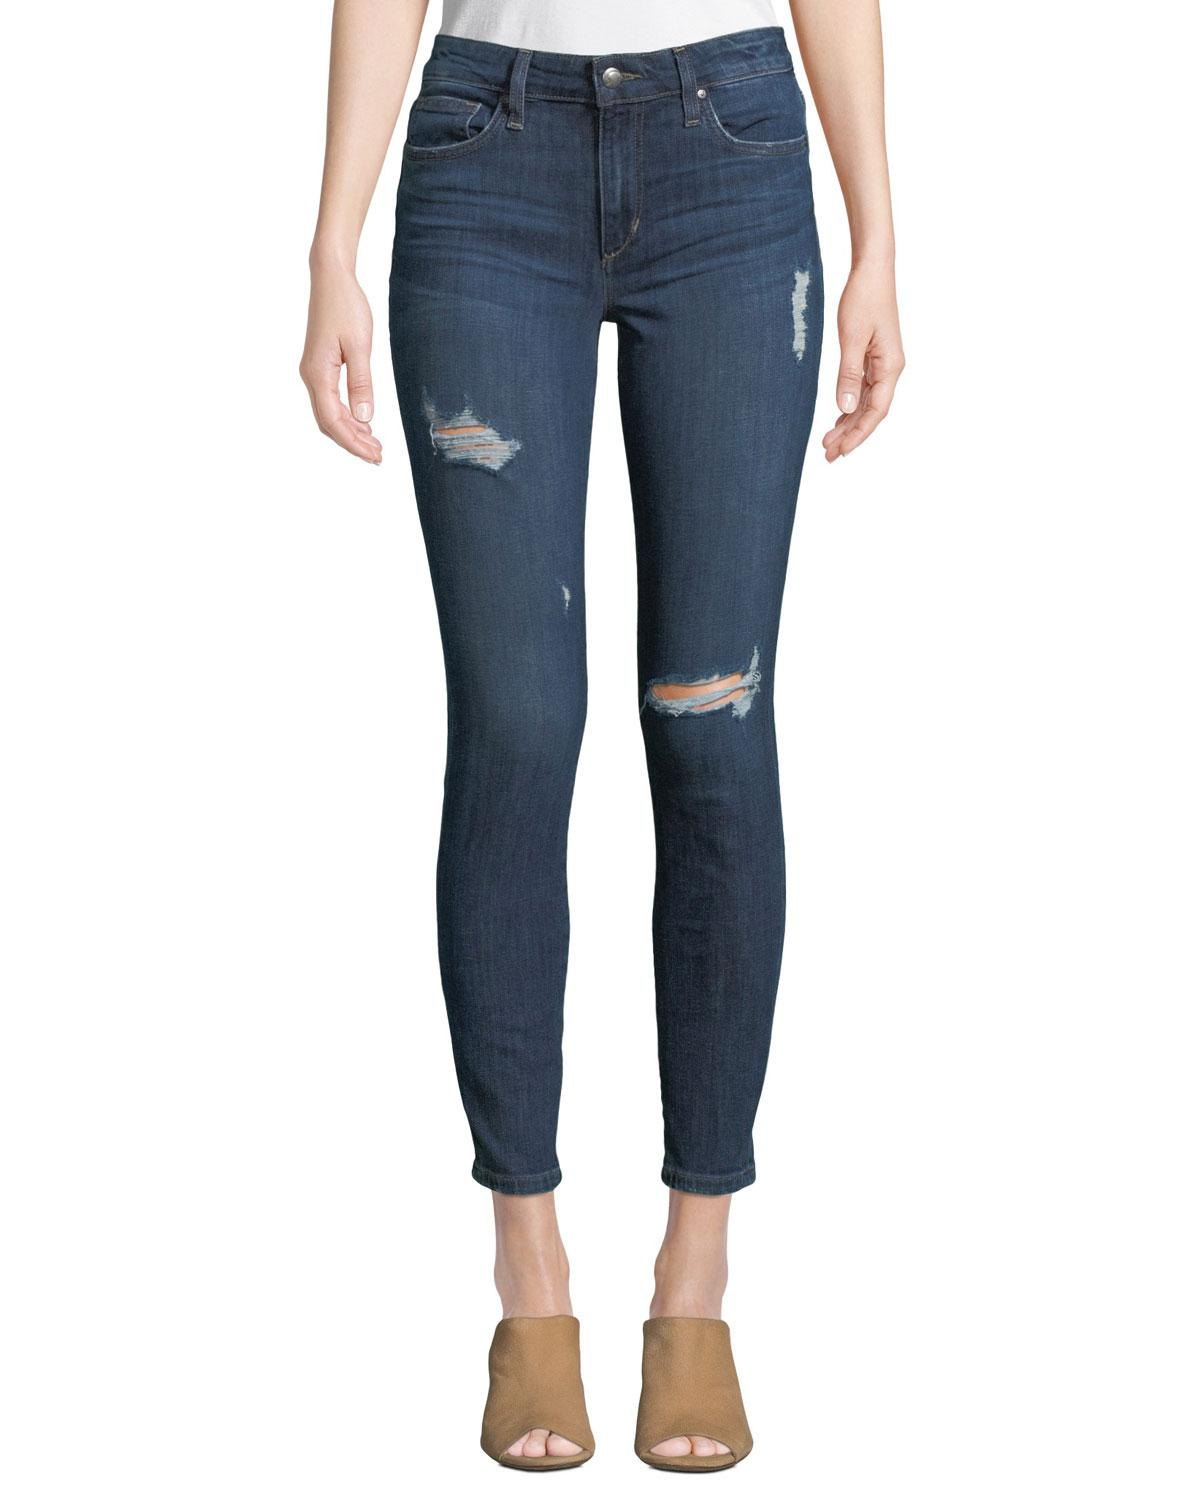 f31b0bf16d09f Lyst - Joe's Jeans Icon Distressed Ankle Skinny Jeans in Blue